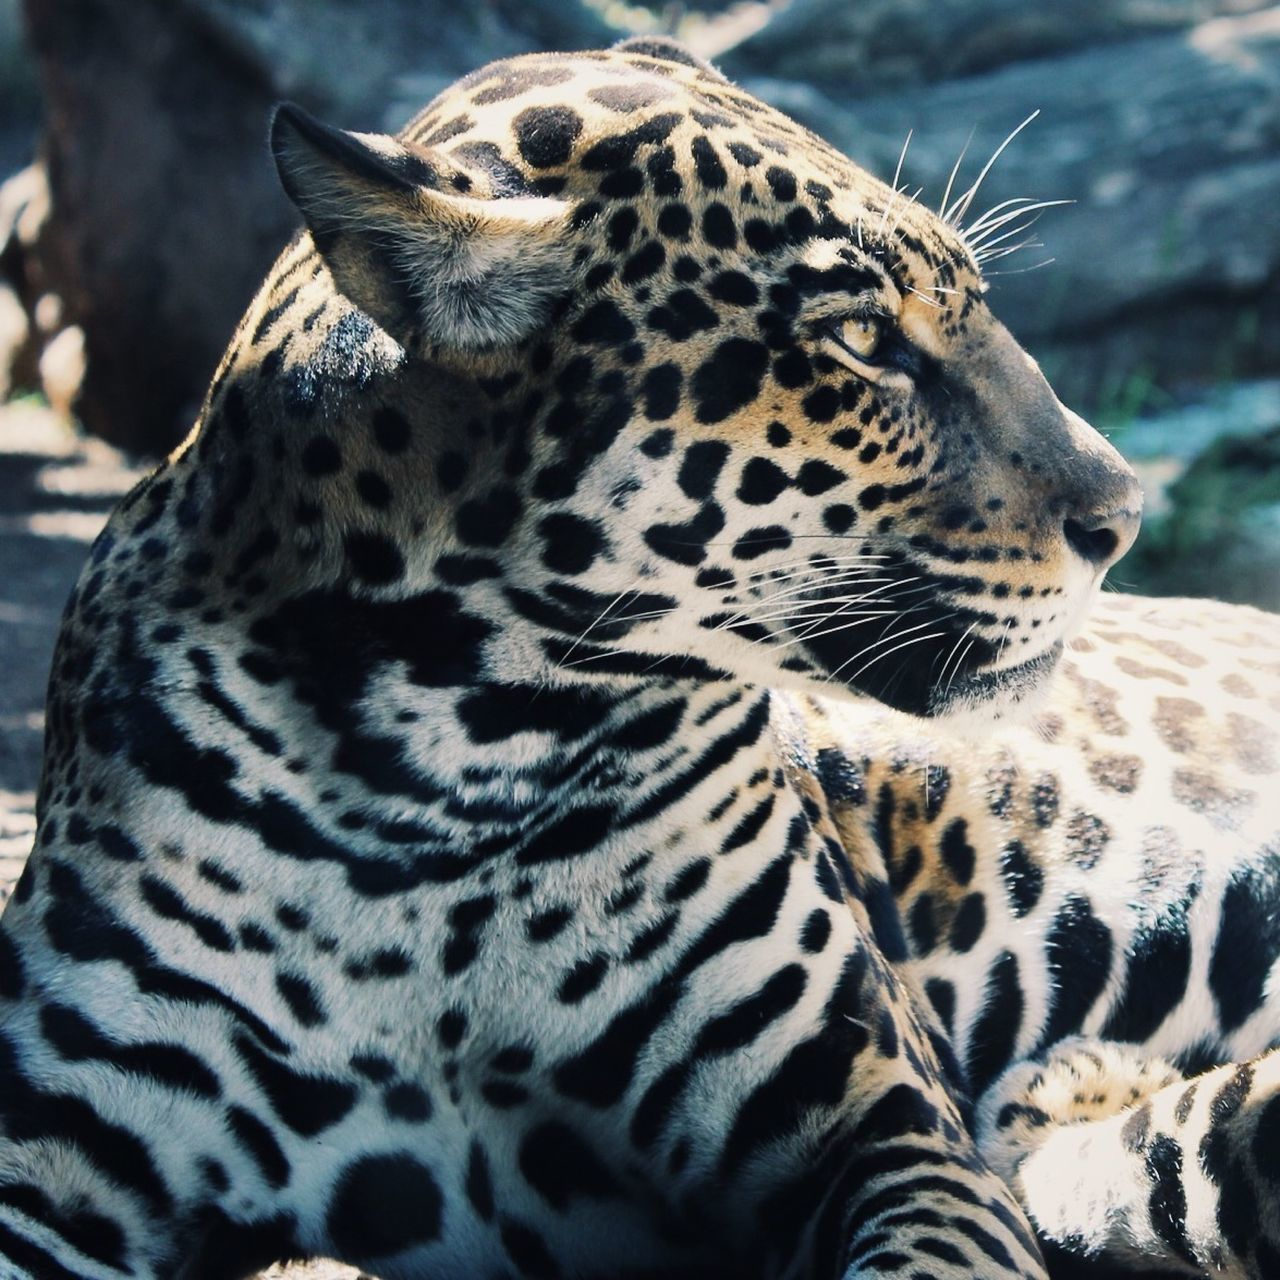 The largest species of wild cat in the Americas, the Jaguar Wildlife One Animal Animal Themes Animals In The Wild Natural Pattern Focus On Foreground Close-up Animal Markings Safari Animals Carnivora Nature Beauty In Nature Endangered Species Animals Danger